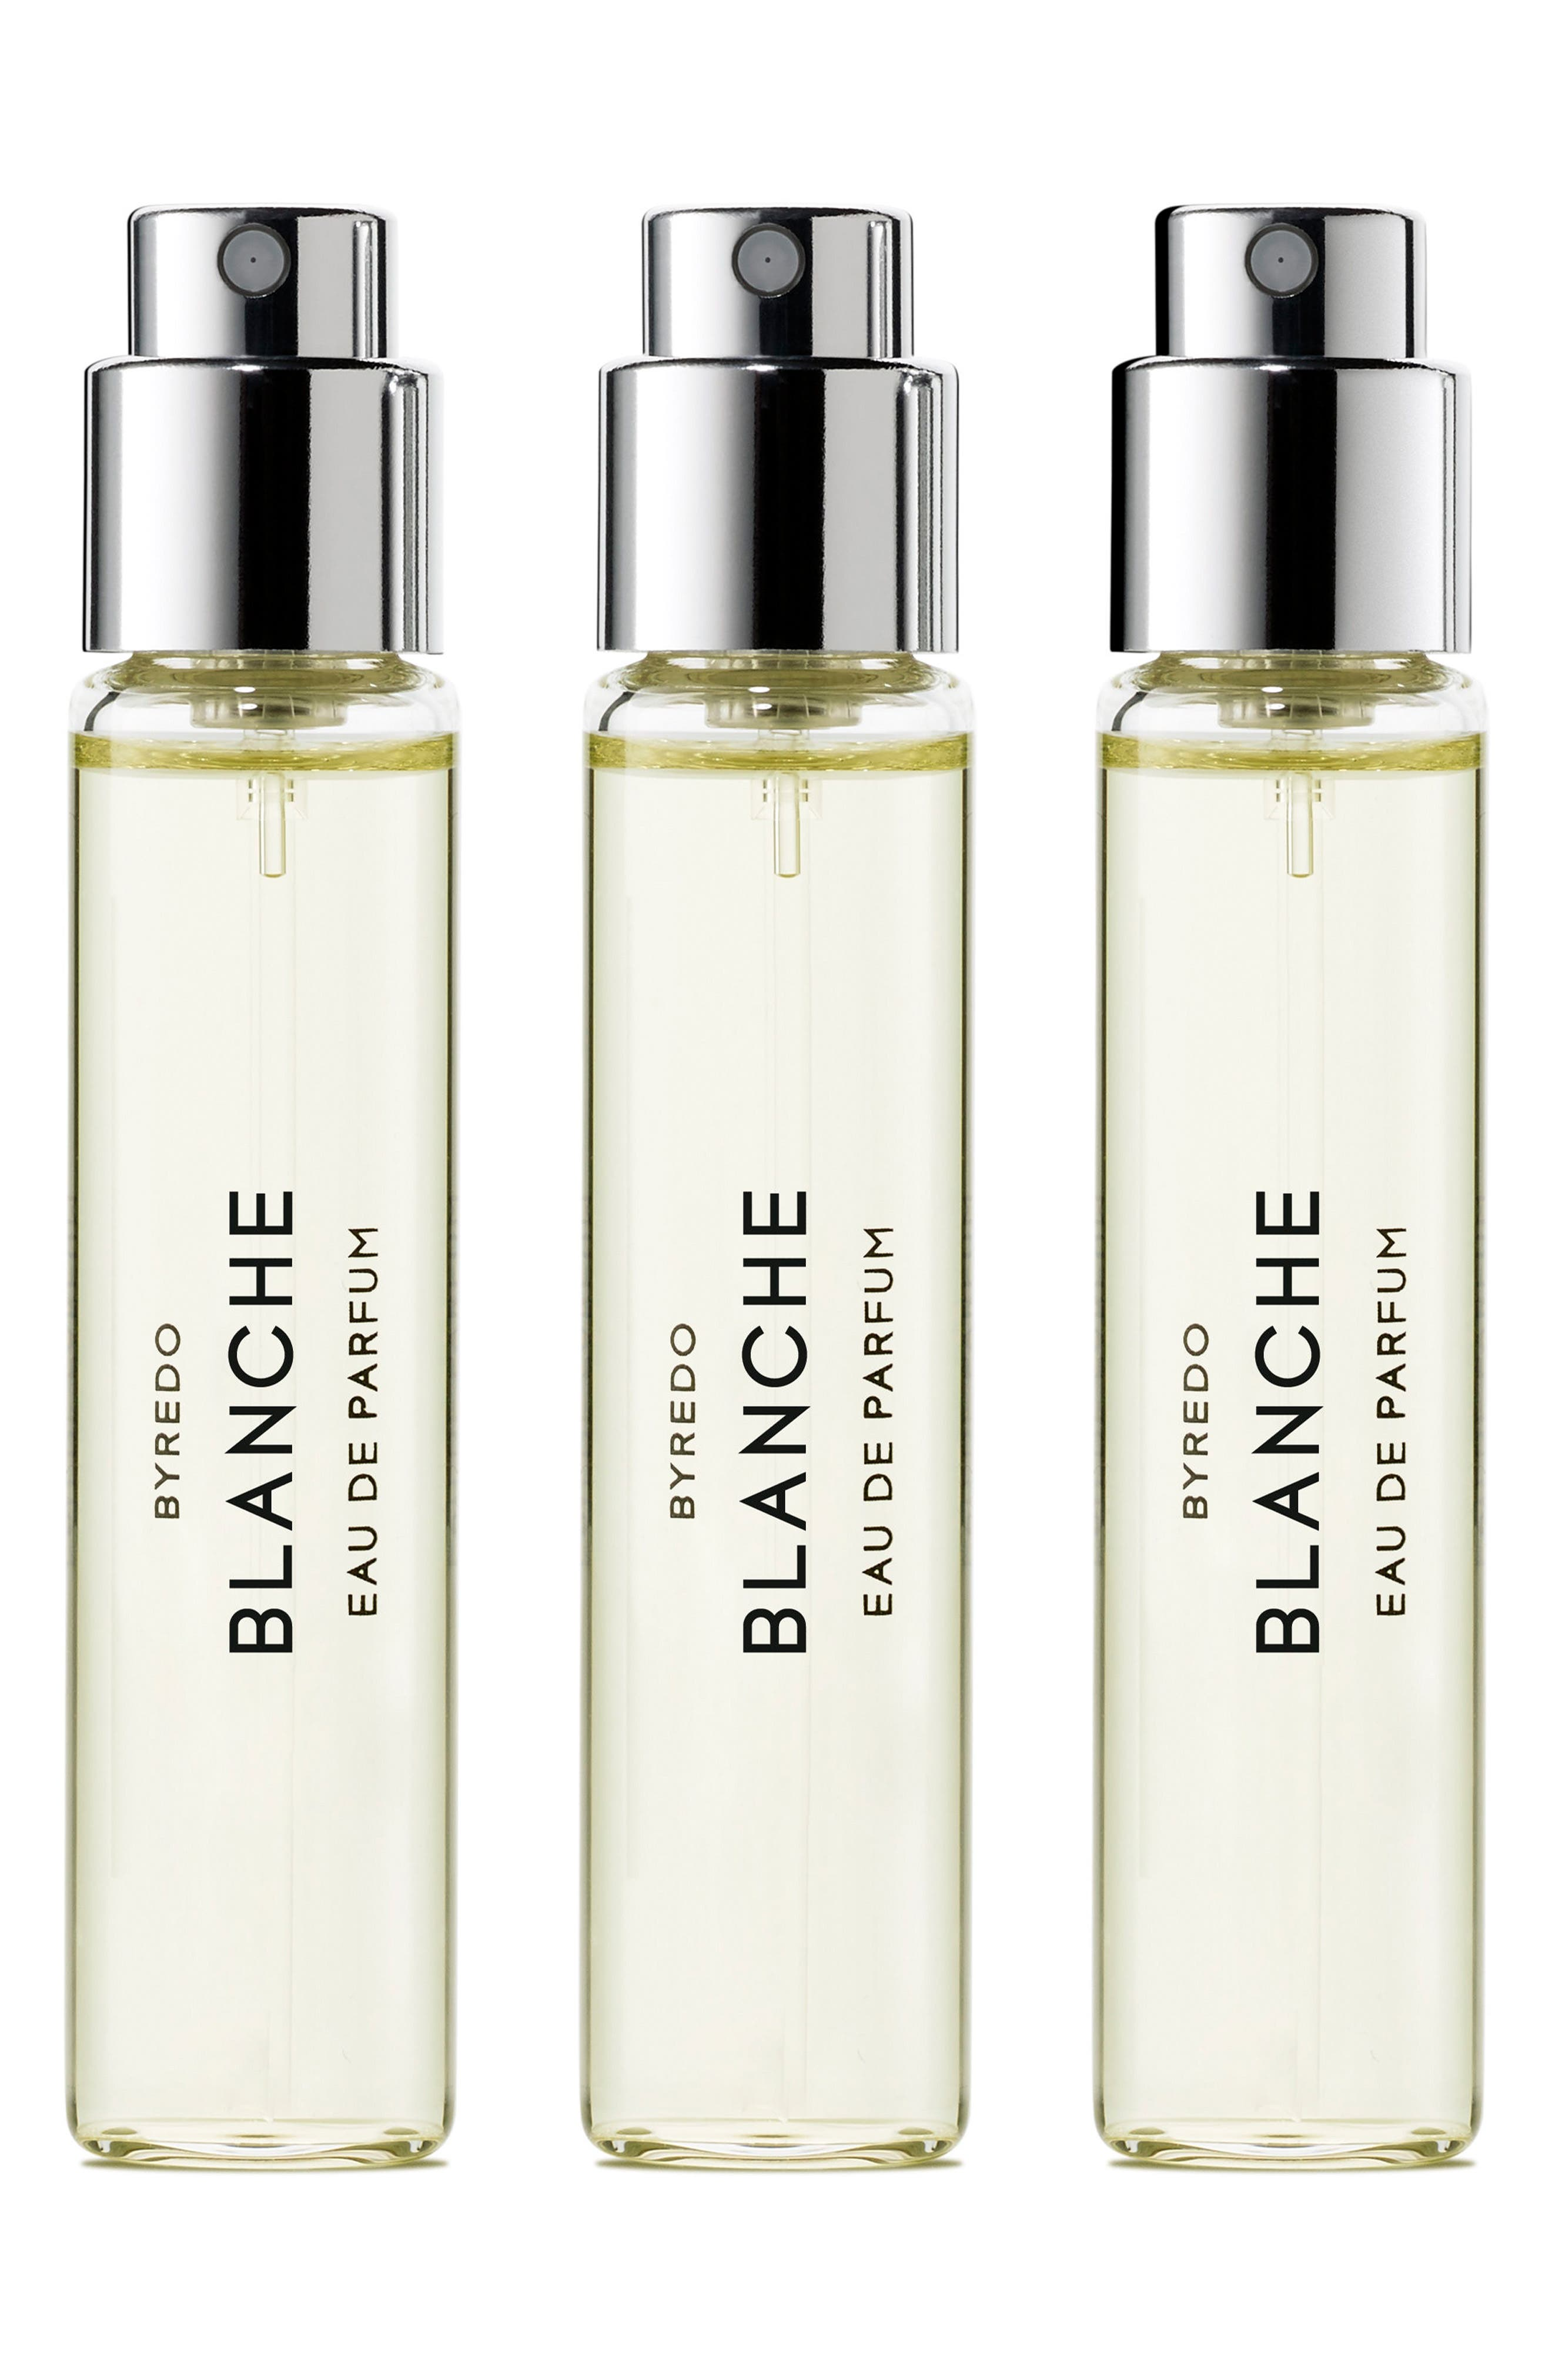 BYREDO Blanche Eau de Parfum Travel Spray Trio